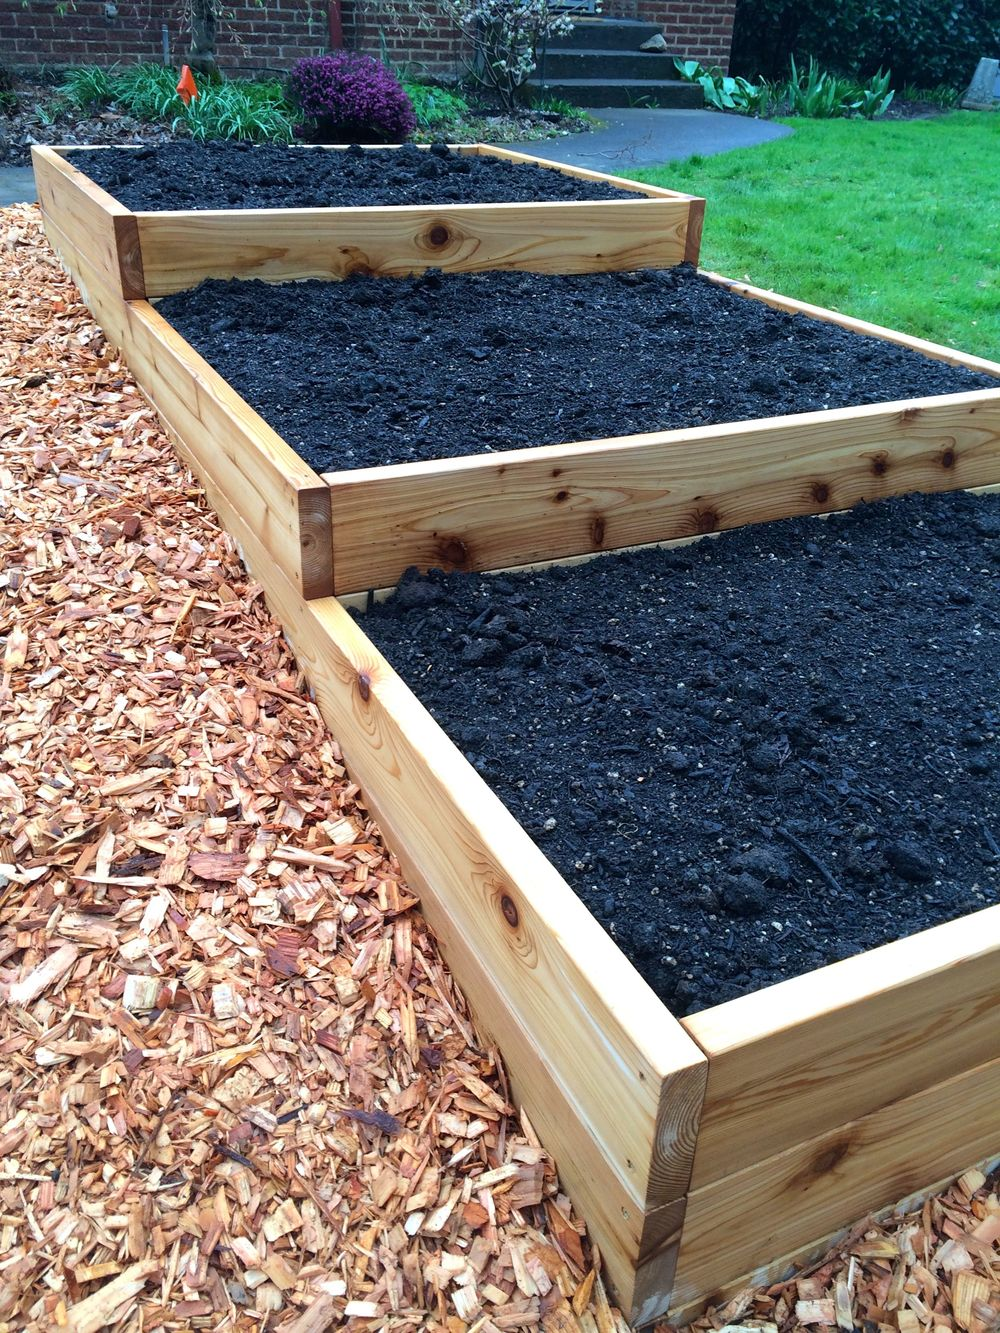 Why Use Raised Garden Beds